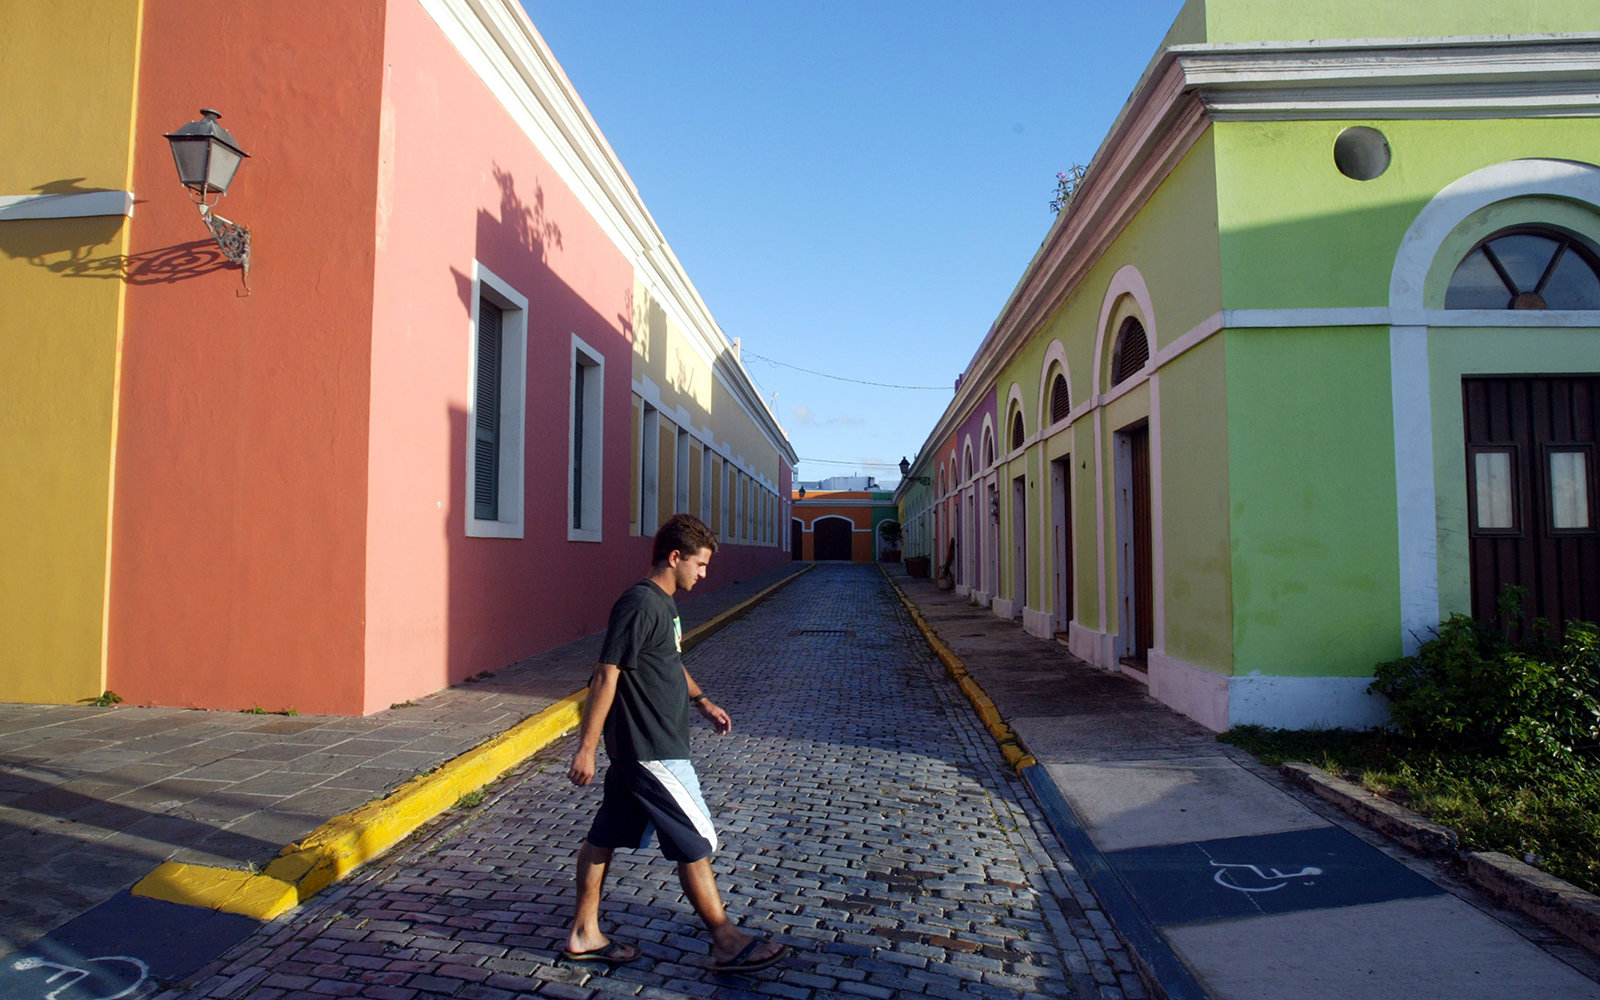 SAN JUAN, PUERTO RICO- APRIL 25: Colorful homes line the cobblestoned streets April 25, 2004 in Old San Juan, the original capital city of San Juan, Puerto Rico. The old city is a historic district of seven square blocks made up of ancient buildings and c